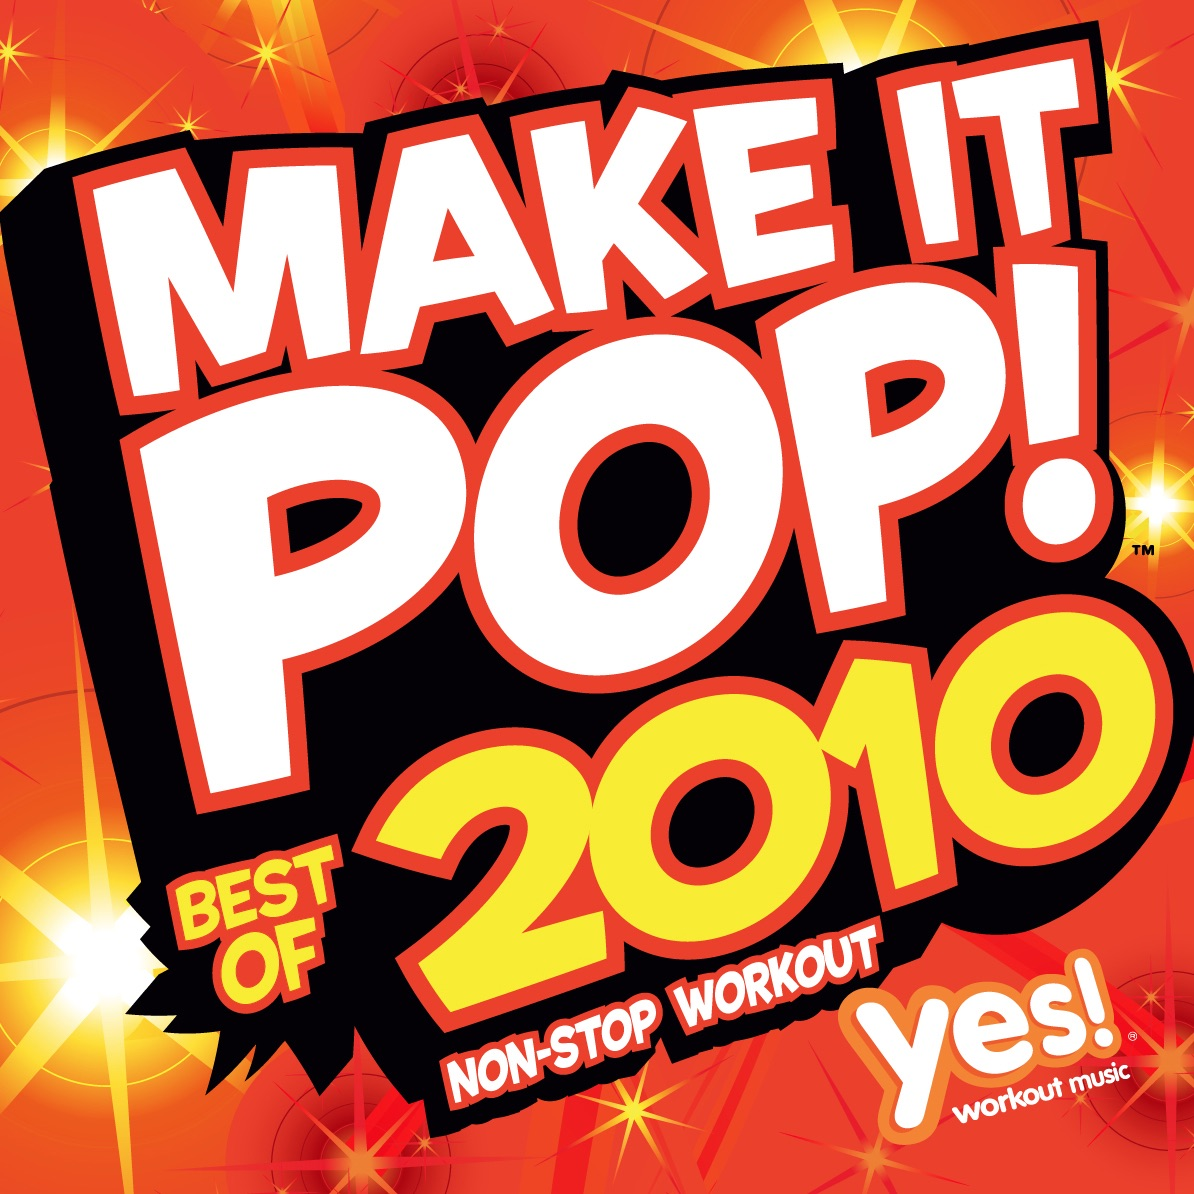 Make It Pop!: Best of 2010 Album Cover by Yes Fitness Music